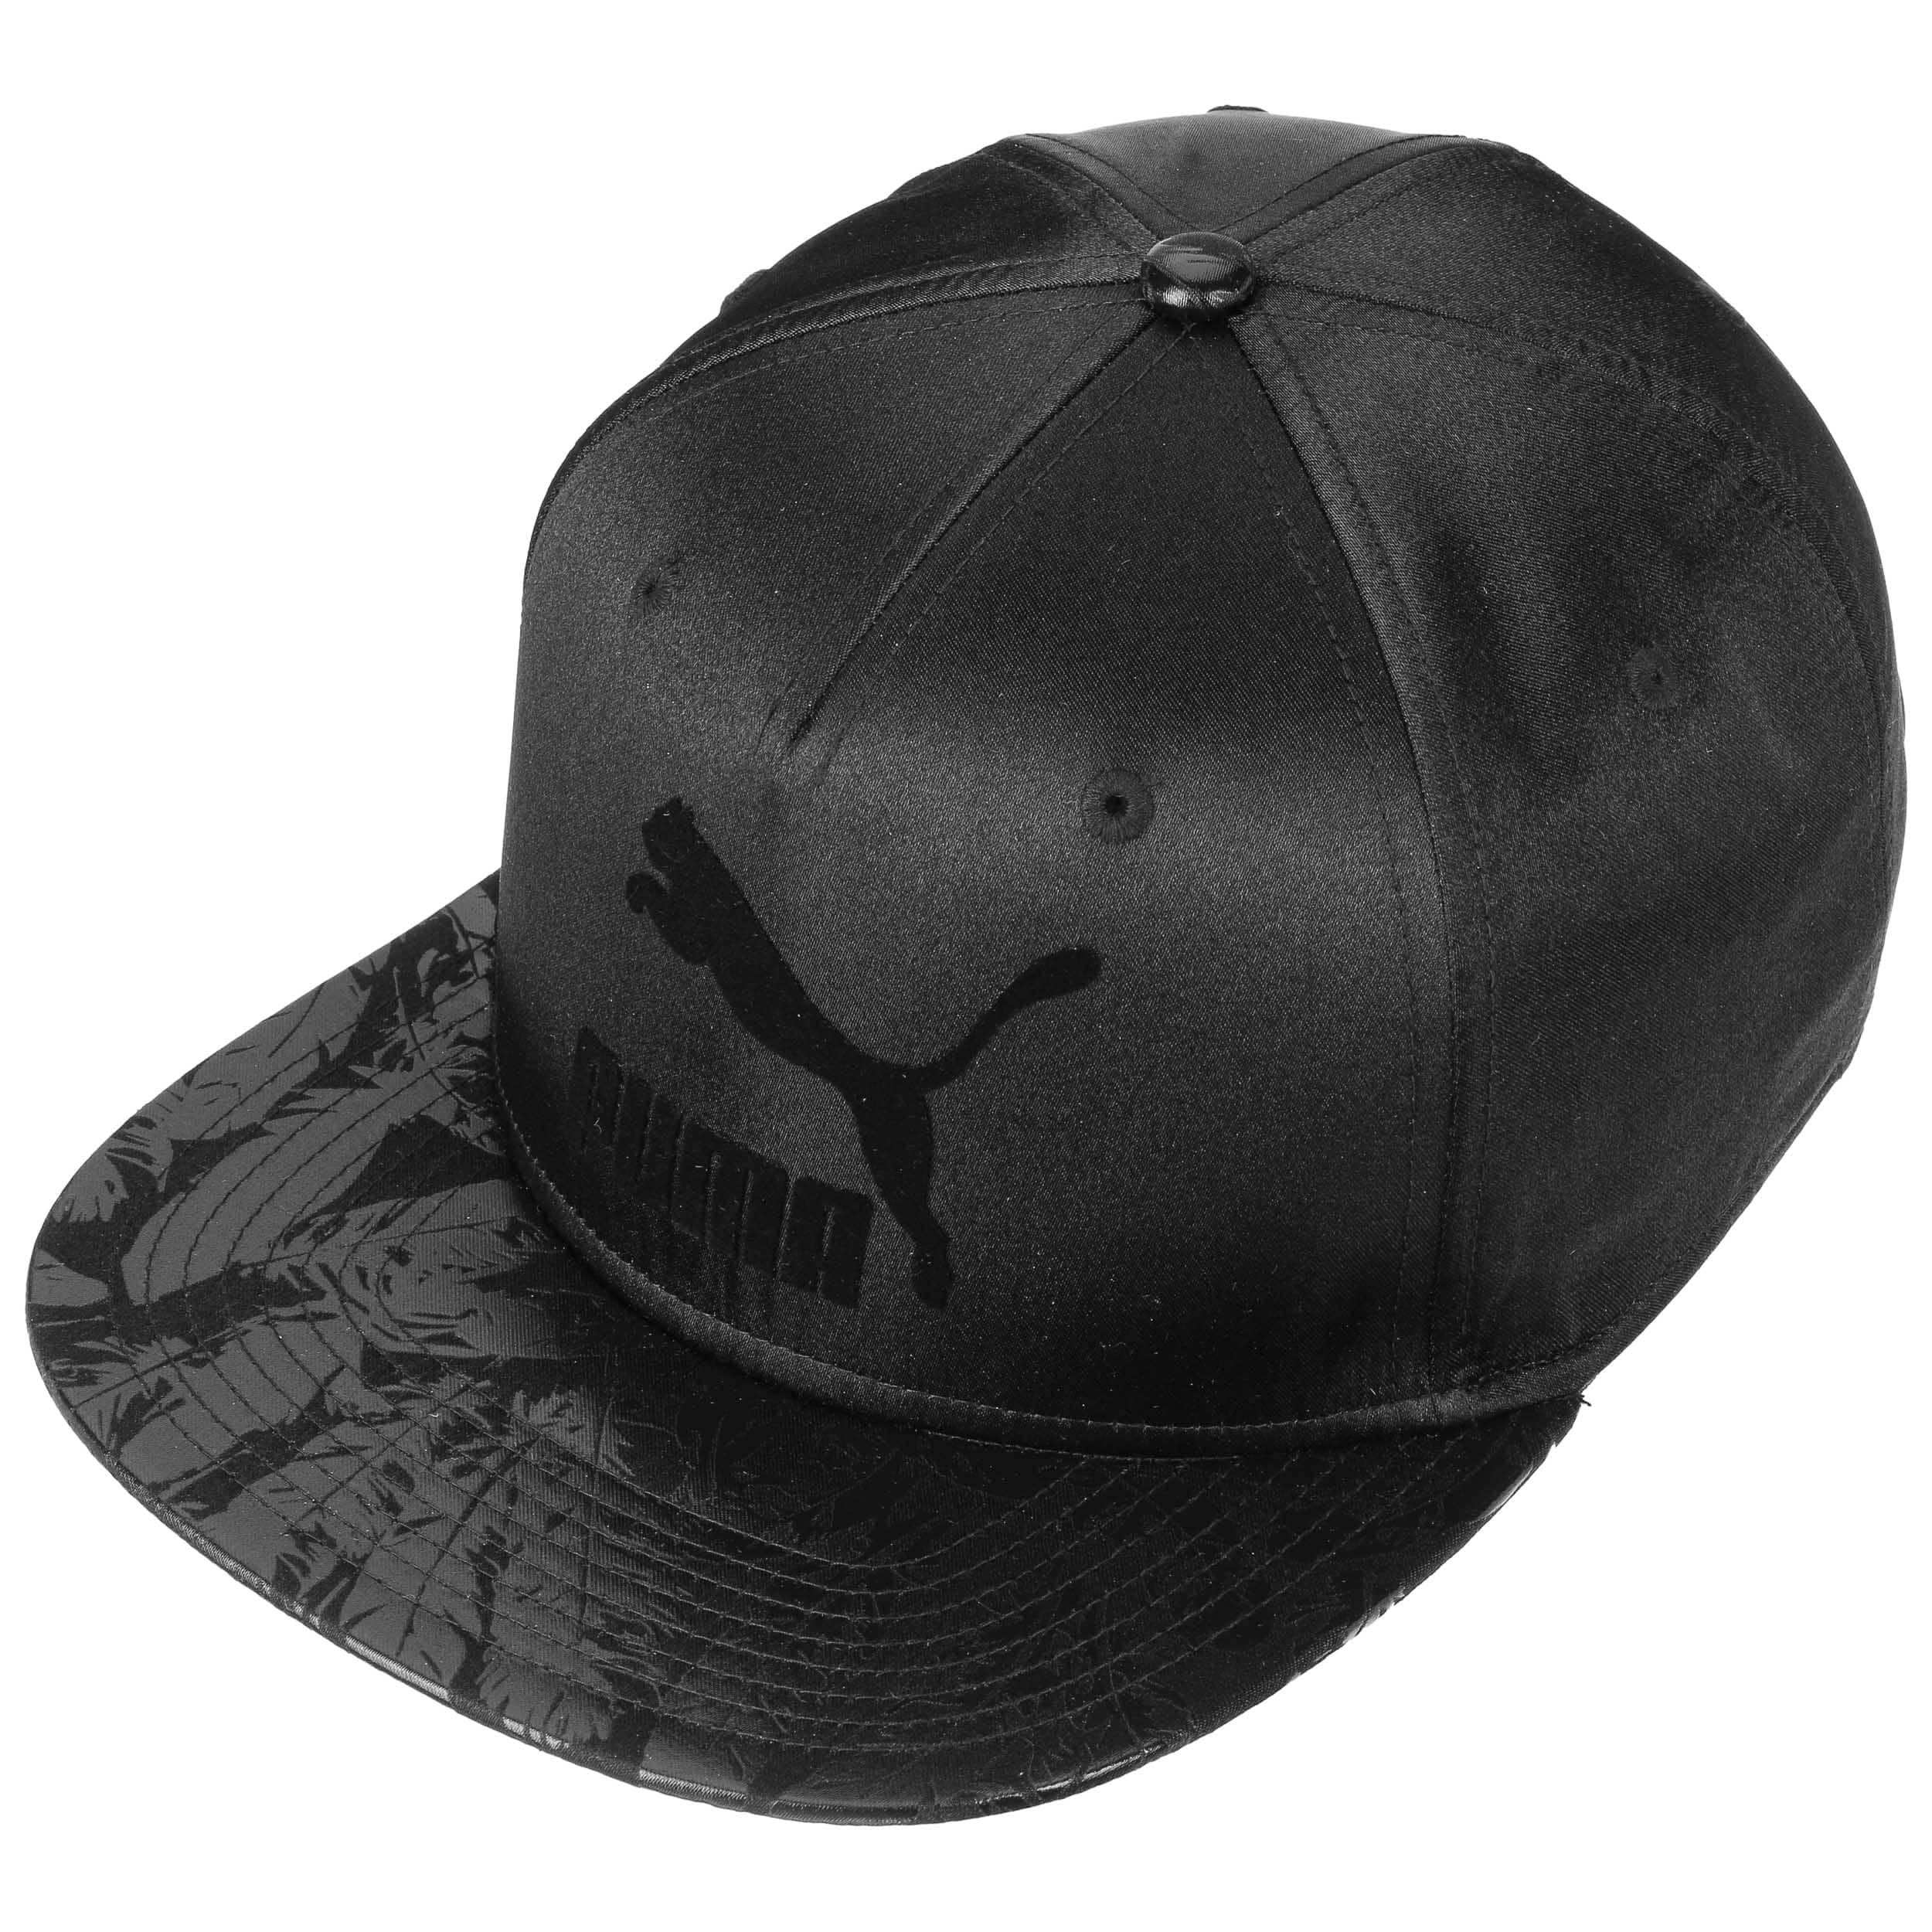 Ringside PP Snapback Cap by PUMA - black 1 ... bb778eb7bcc